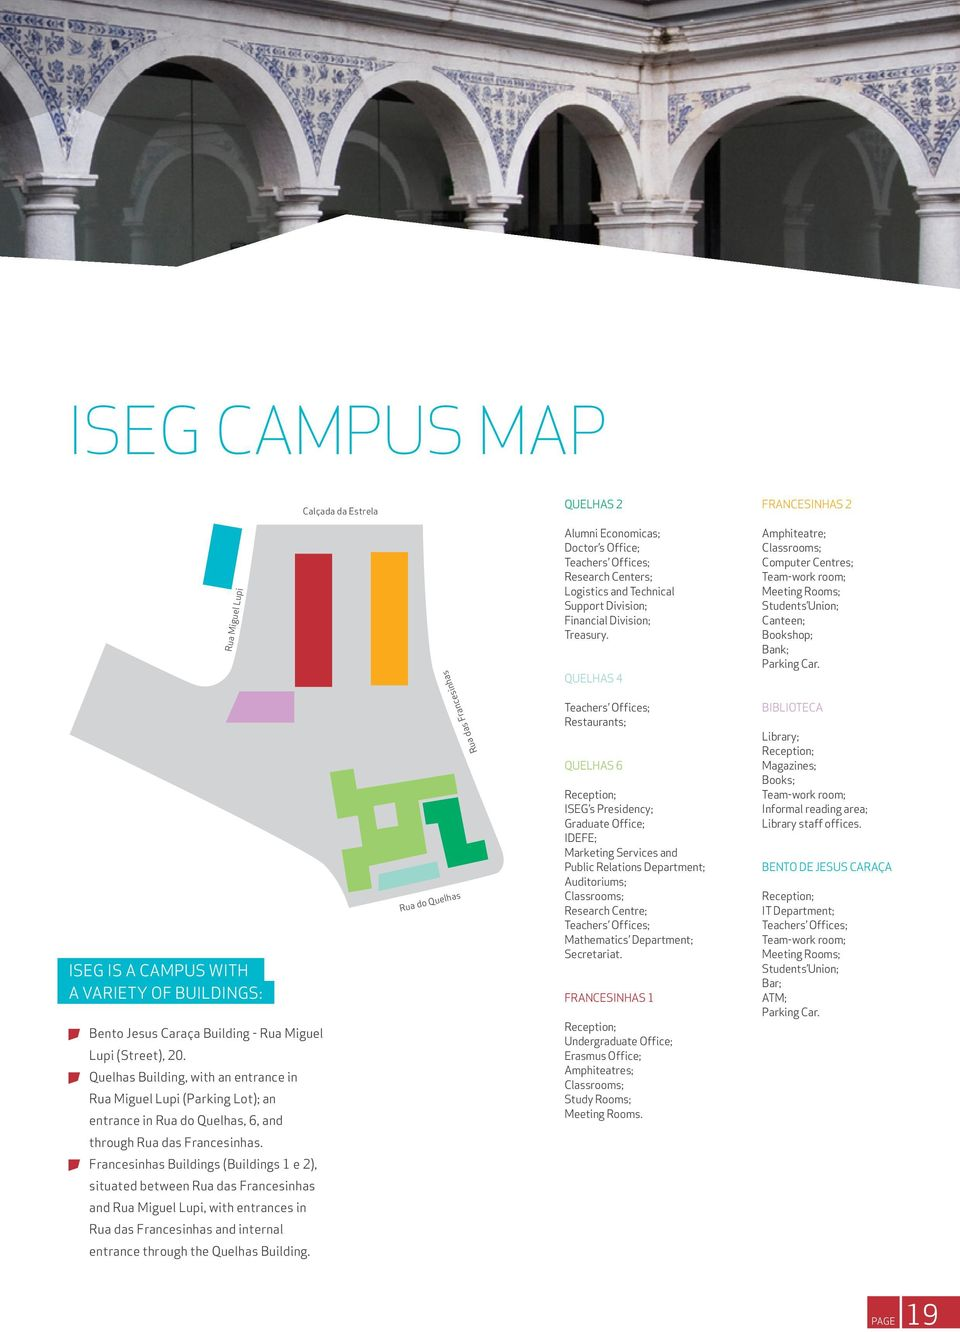 ISEG is a campus with a variety of buildings: Bento Jesus Caraça Building - Rua Miguel Lupi (Street), 20.